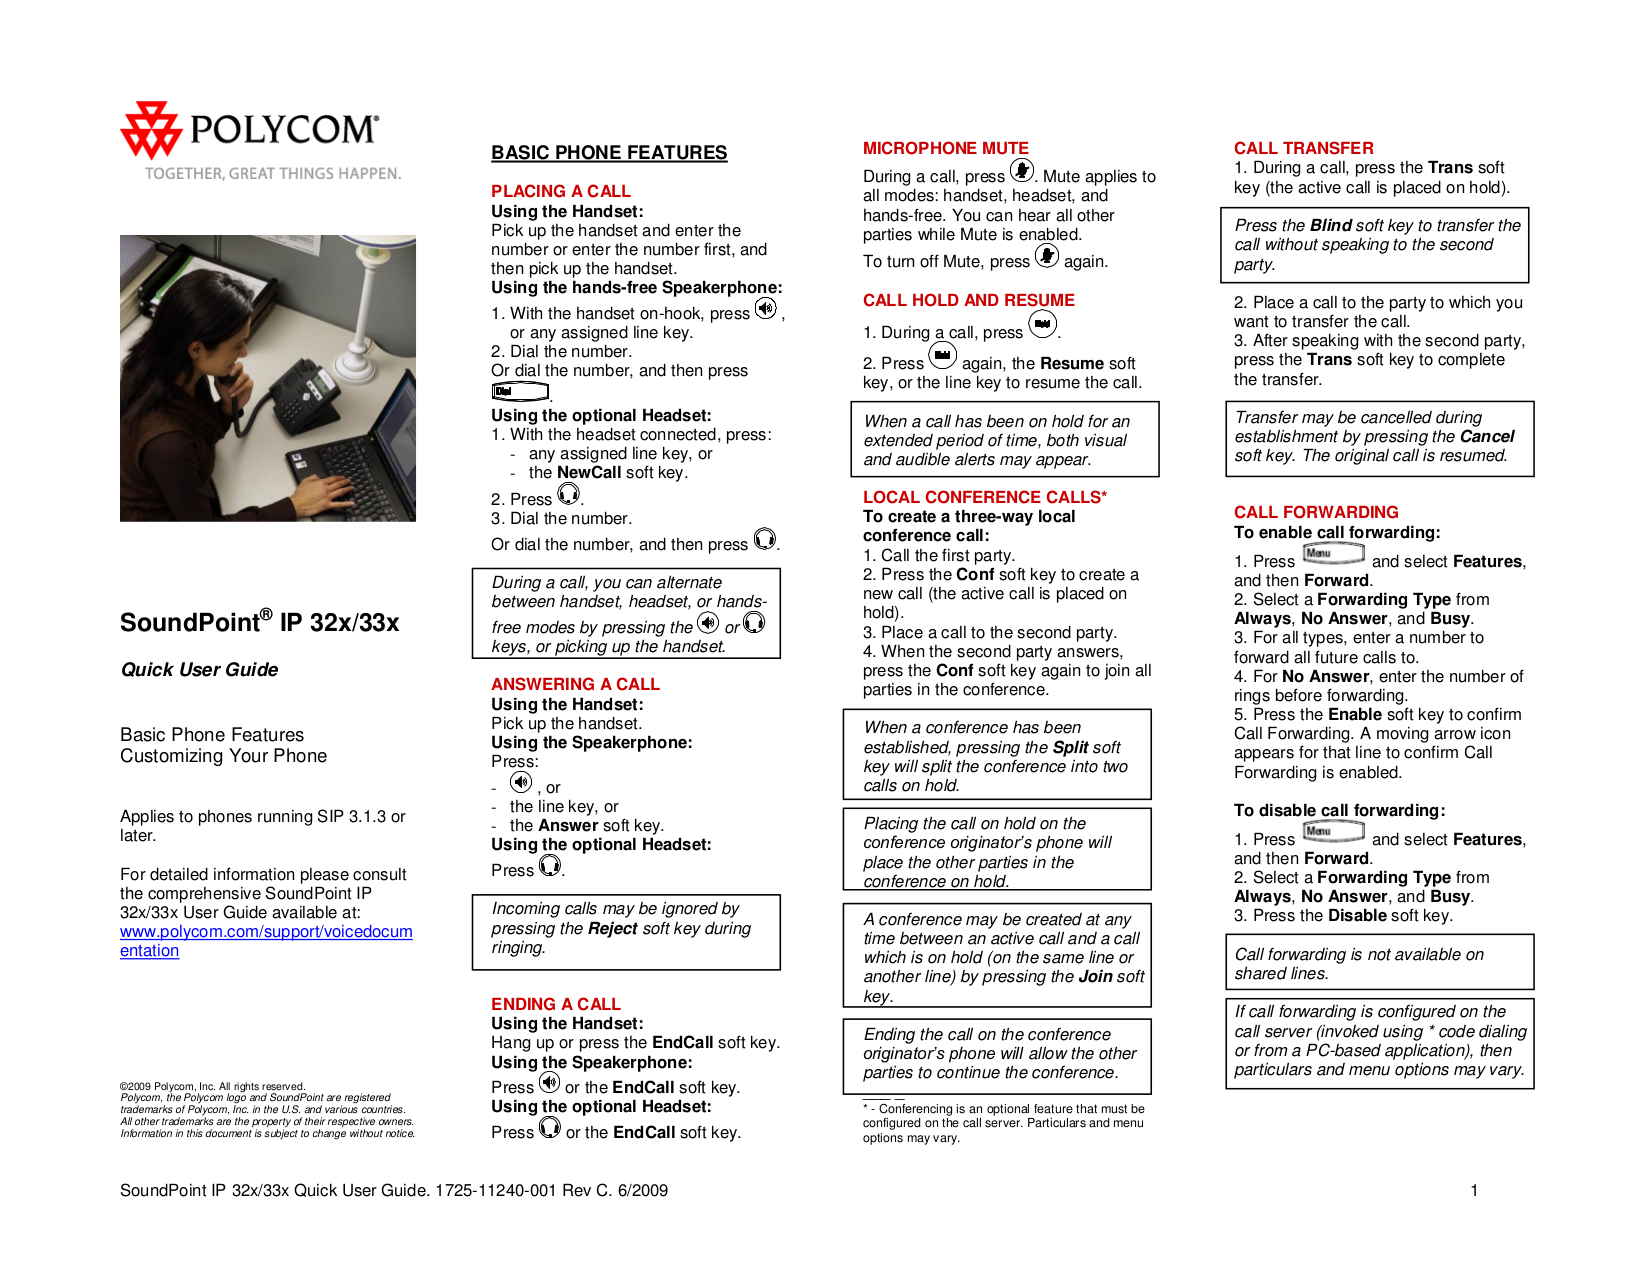 download free pdf for polycom soundpoint ip 331 telephone manual rh umlib com polycom soundpoint ip 331 quick user guide Polycom Conference Phone